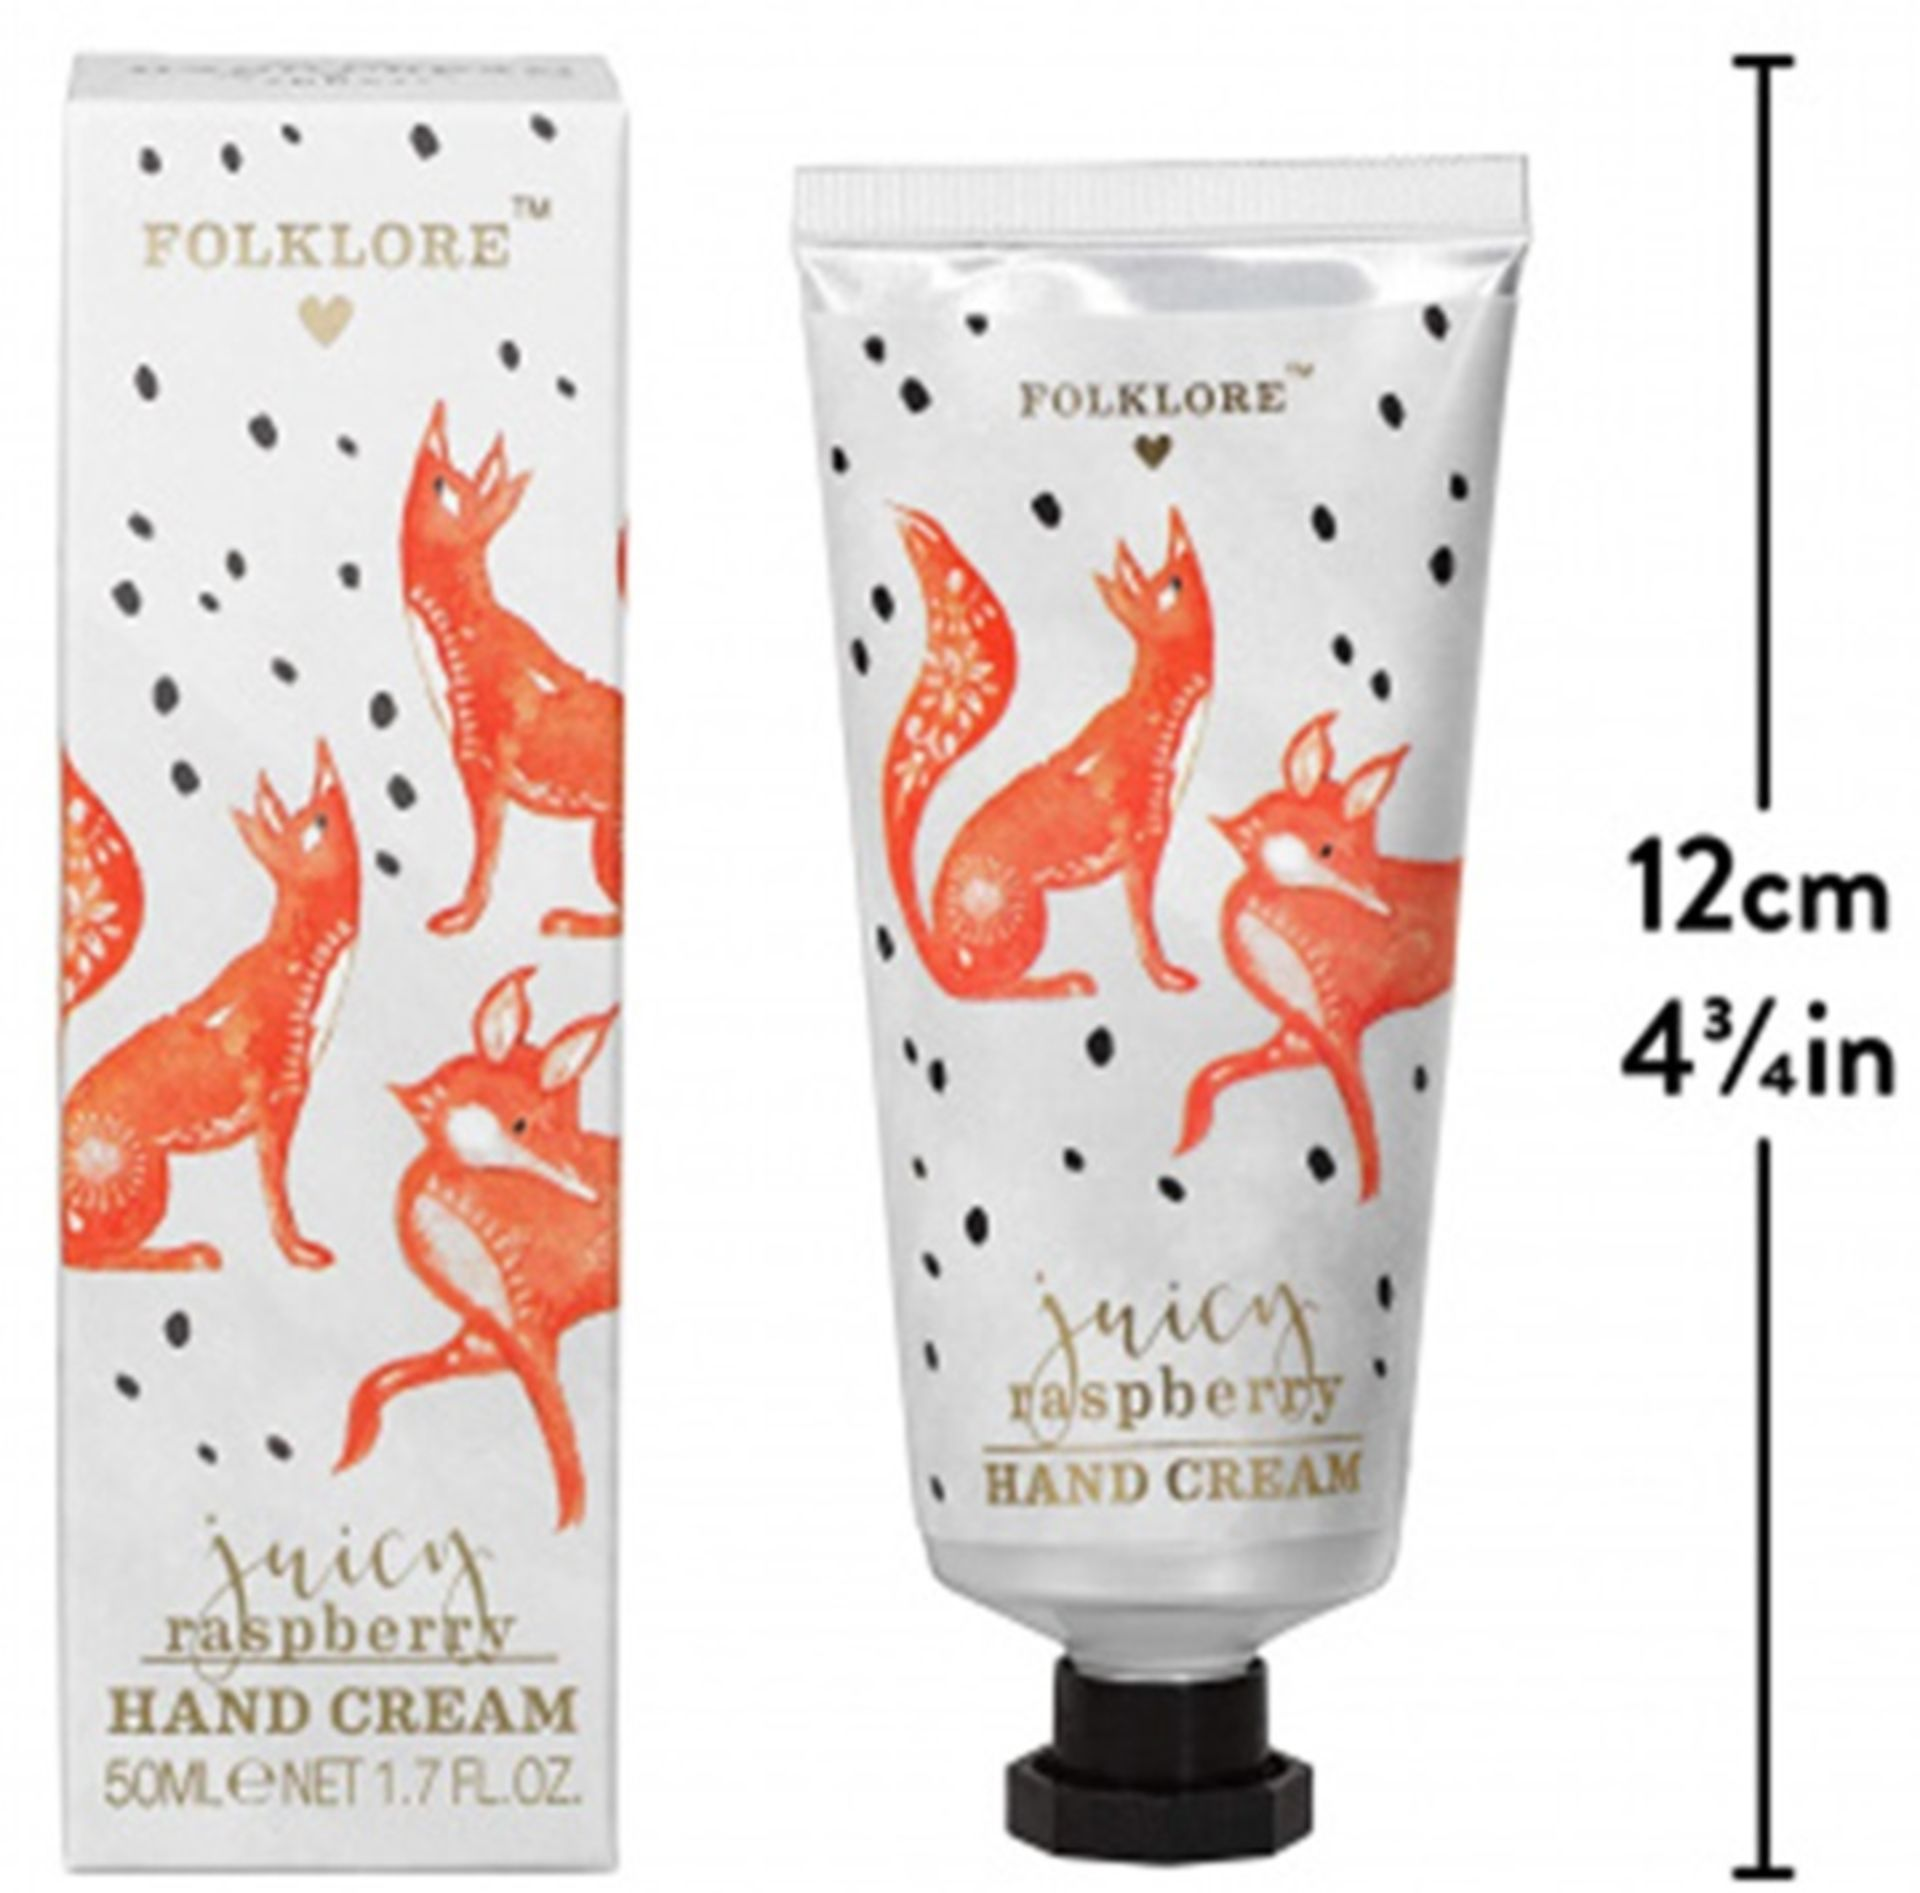 100 x Various Folklore Handcream | 50ml | Total RRP £899 - Image 3 of 4